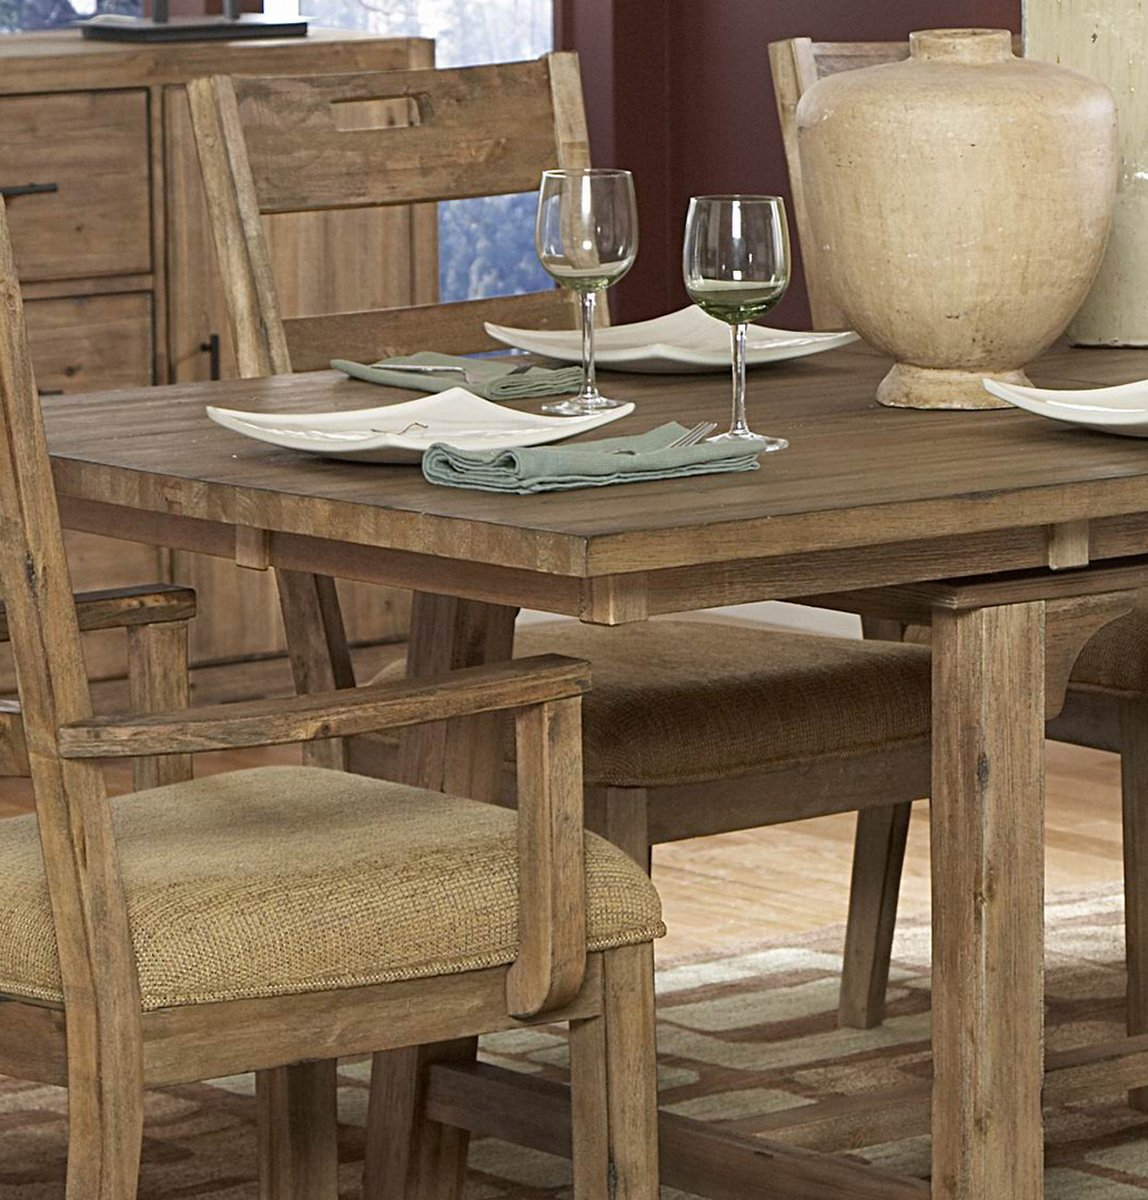 Homelegance Oxenbury Fabric Side Chair in Driftwood